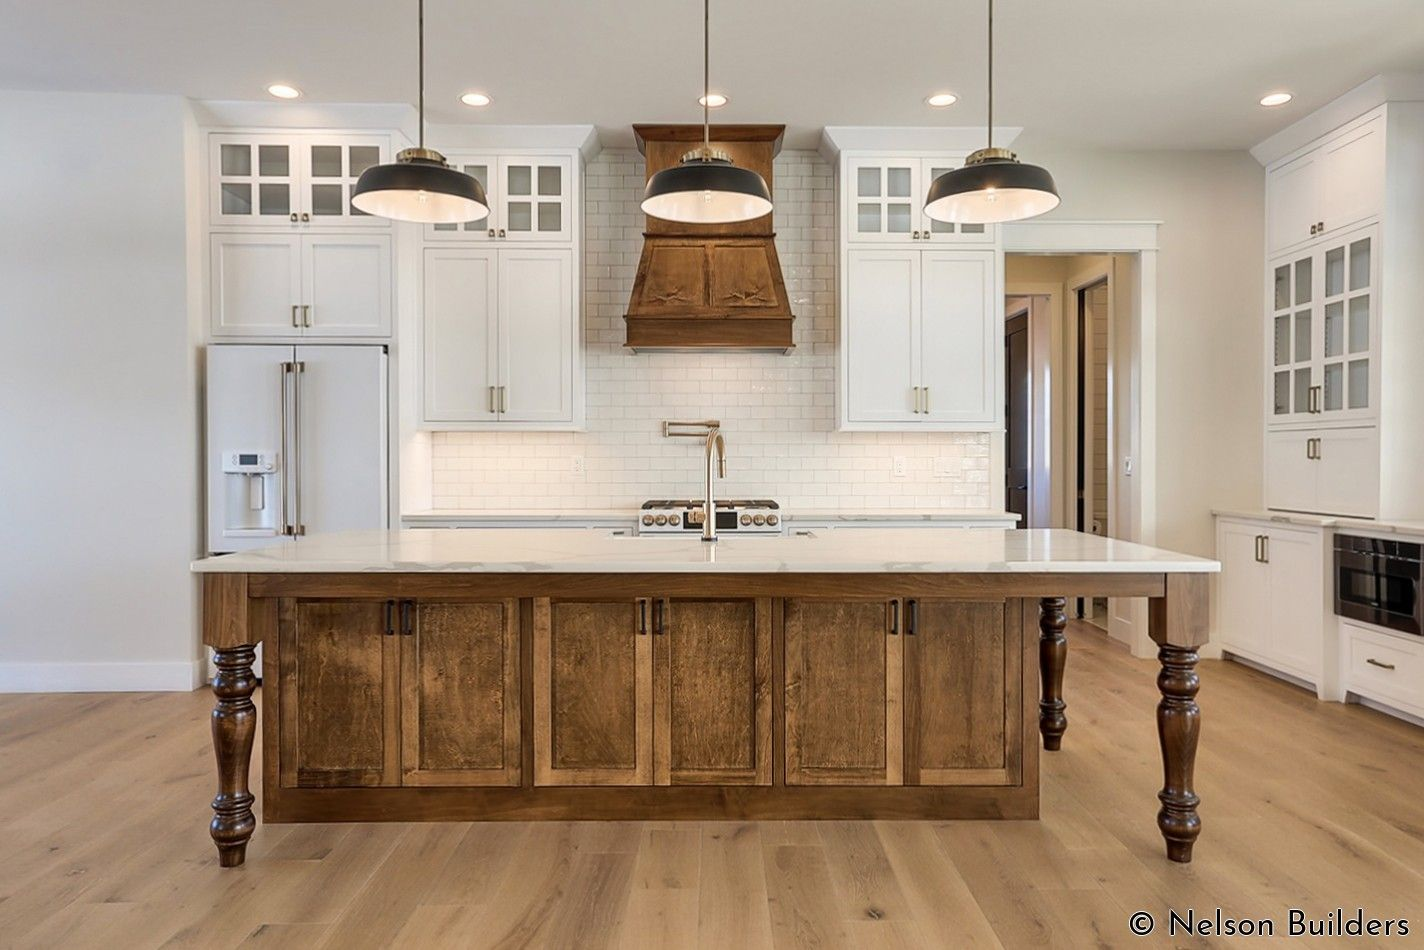 The 10 Foot Ceilings In This Farmhouse Kitchen Are Balanced Out With Full Height Cabinetry An In 2020 Farmhouse Kitchen Design Elegant Master Bedroom Built In Bookcase